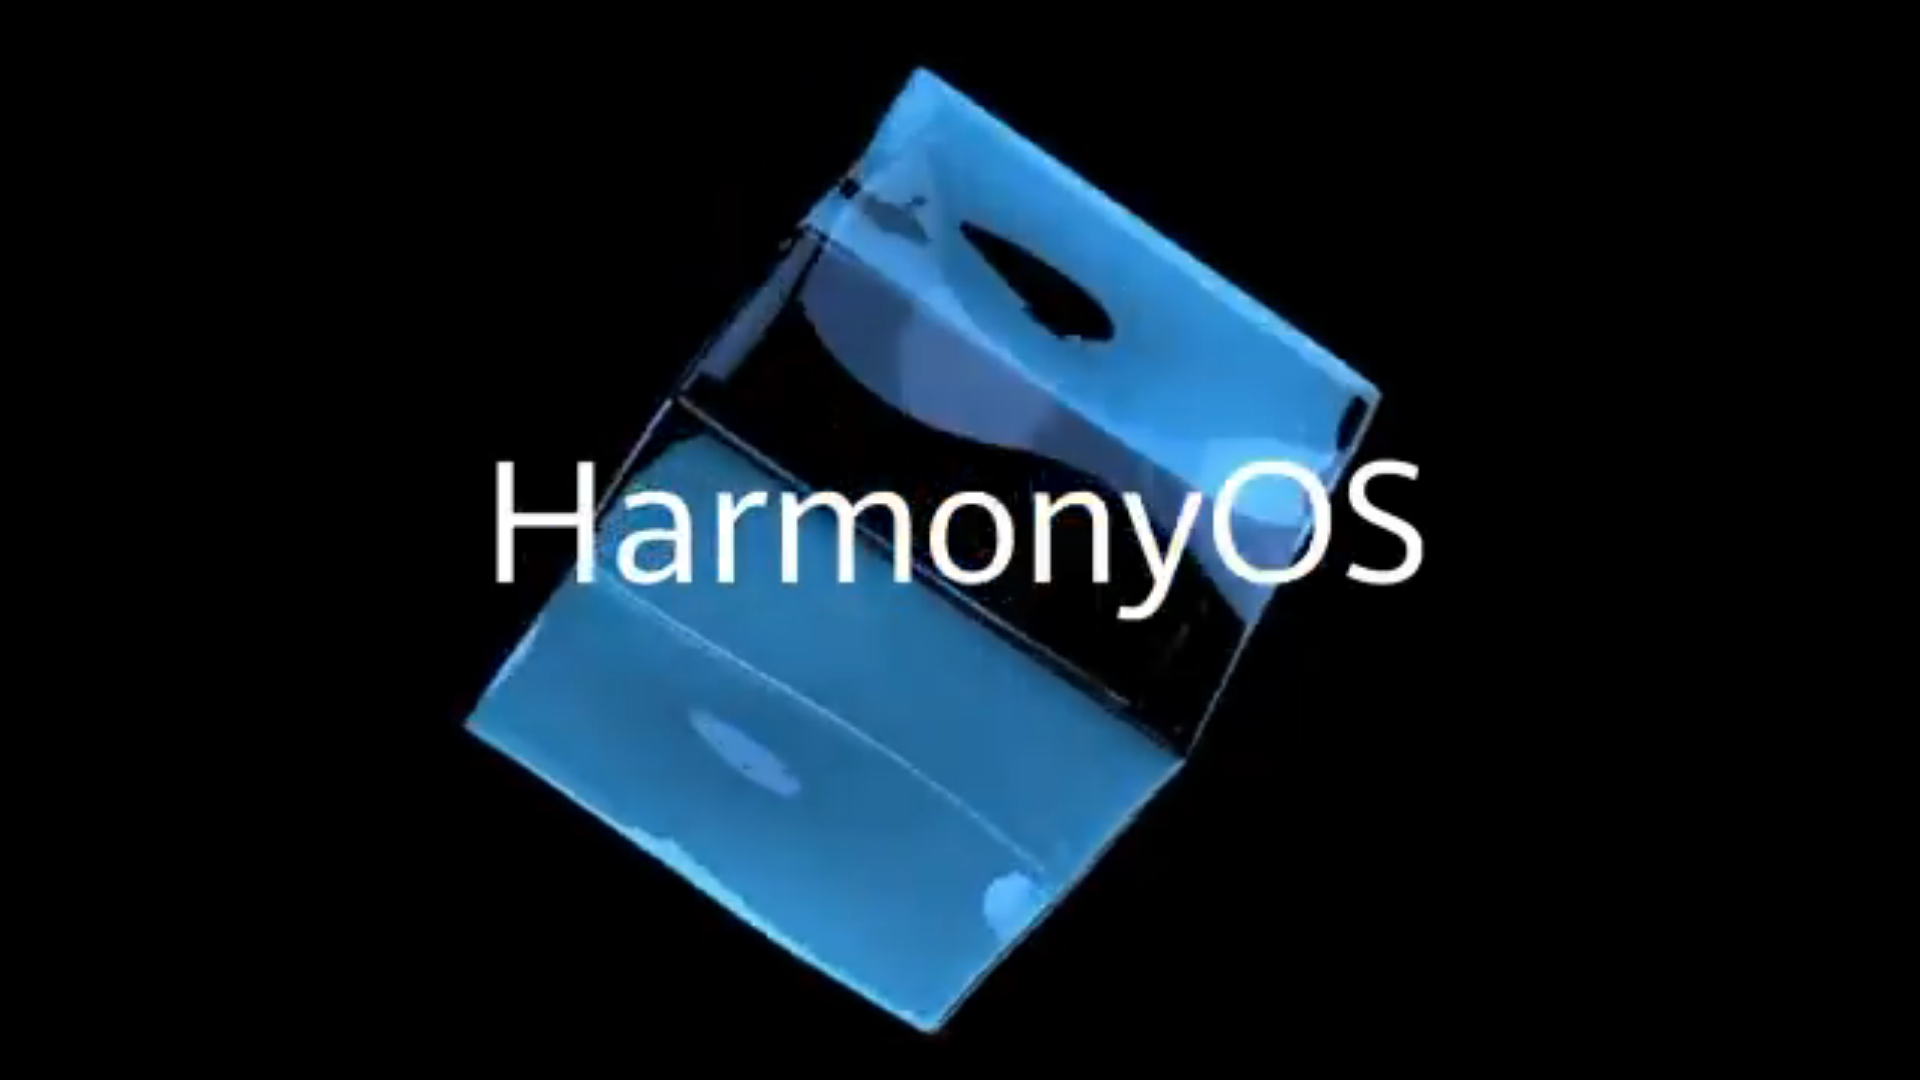 Huawei announces its first operating system, HarmonyOS | Ars Technica